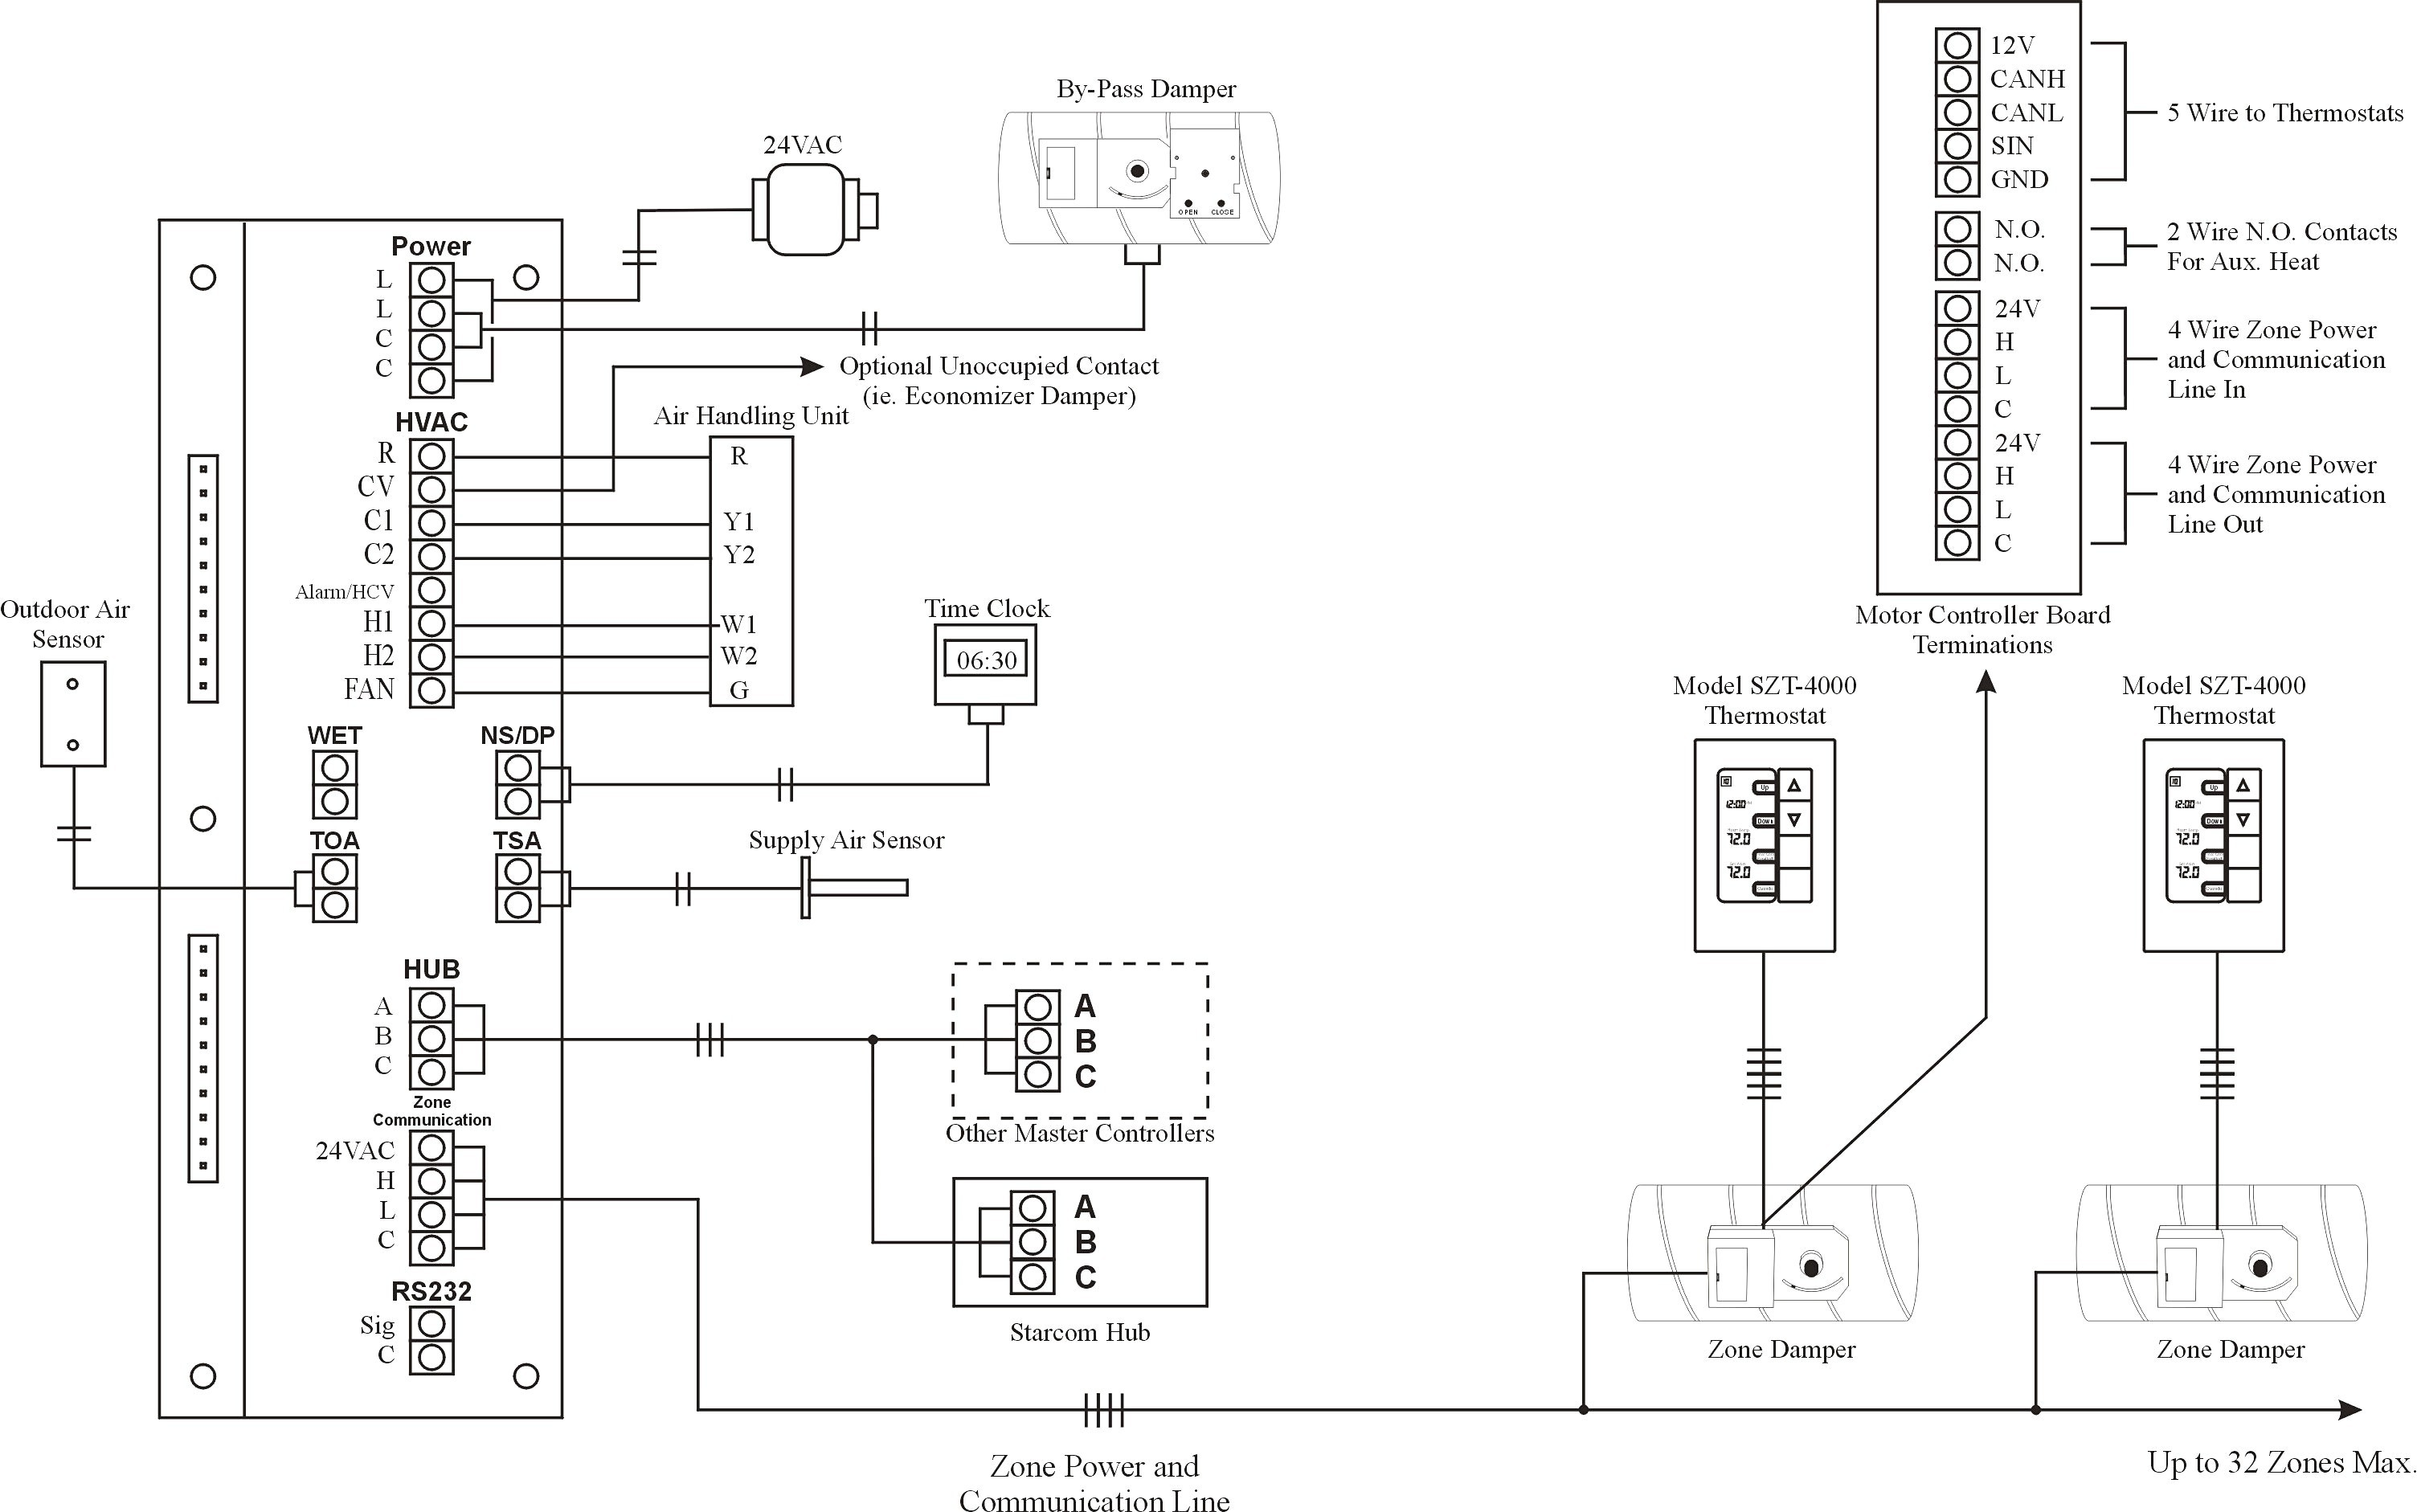 Scintillating 2004 Honda Accord Ac Wiring Diagram Ideas   Best Image besides 95 Honda Civic Fuel Pump Wiring Diagram  Honda  Auto Wiring Diagrams besides Honda Wiring Diagrams 1995 Honda Odyssey Wiring Diagrams Wiring Data together with Honda Van Fuse Box   Wiring Diagram • as well 1995 Honda Accord Wiring of Starter ignition Relay  Mitsuba furthermore Honda Nc50 Wiring Harness   Wiring Diagrams additionally Honda Odyssey Fuse Box Diagram   Wiring Data furthermore 1995 Honda Odyssey Wiring Diagrams   WIRE Center • likewise 1995 Honda Odyssey Wiring Diagram   Ex le Electrical Circuit • together with  likewise  furthermore 1995 Honda Odyssey Wiring Diagram   Ex le Electrical Circuit • in addition dccharacter's electronics projects  ing Honda Odyssey 2007 RES besides  moreover Honda Odyssey Wiring Diagram – dynante info in addition 2006 Honda Odyssey Ac Wiring Diagram   Collection Of Wiring Diagram. on 1995 honda odyssey fuse diagram